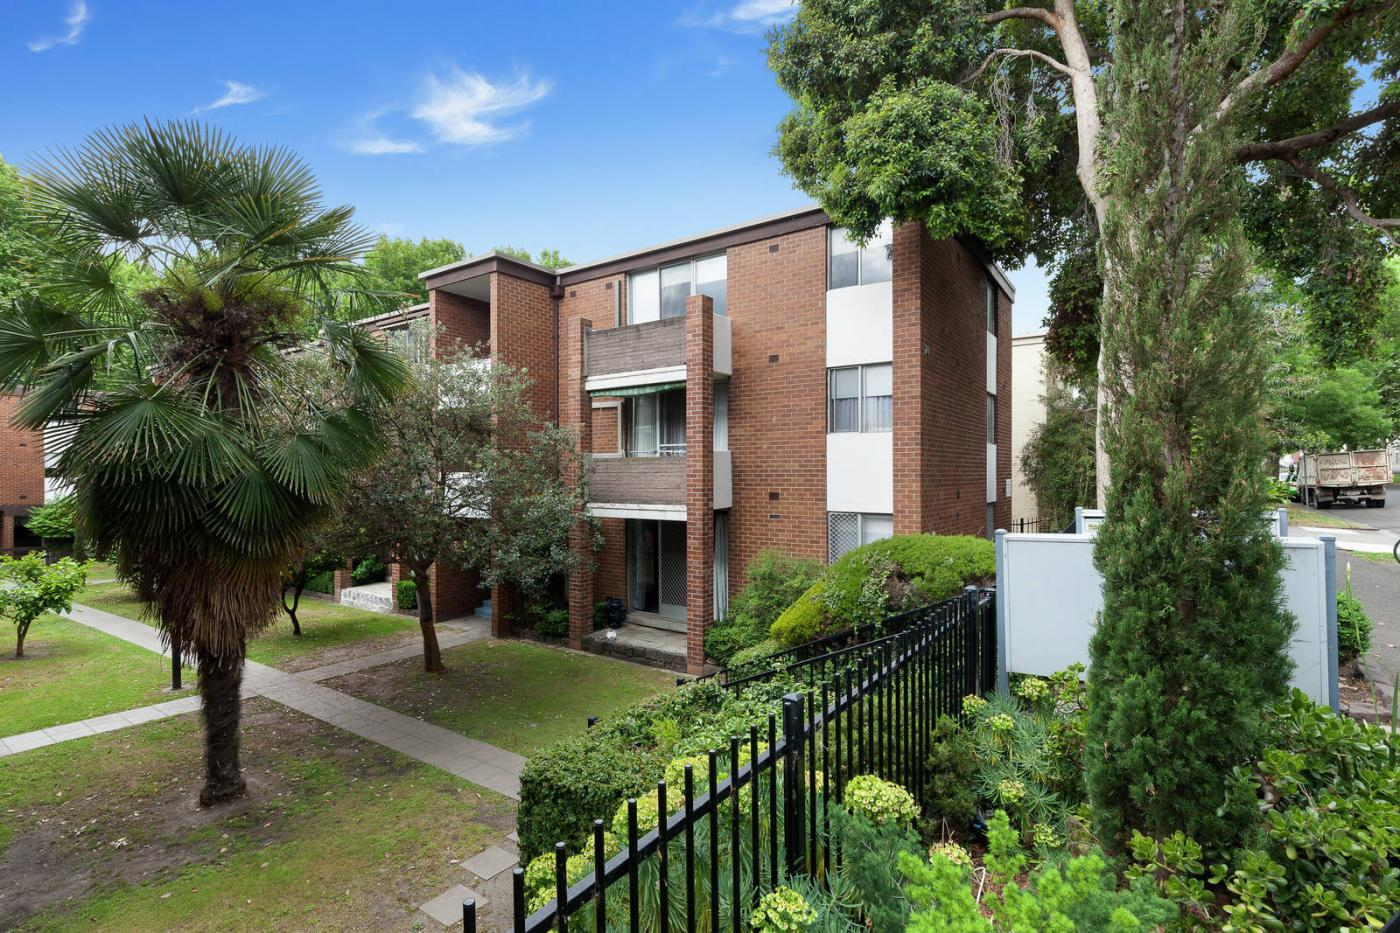 70-o-shanassy-street-north-melbourne-vic-3051-real-estate-photo-1-xlarge-11987022